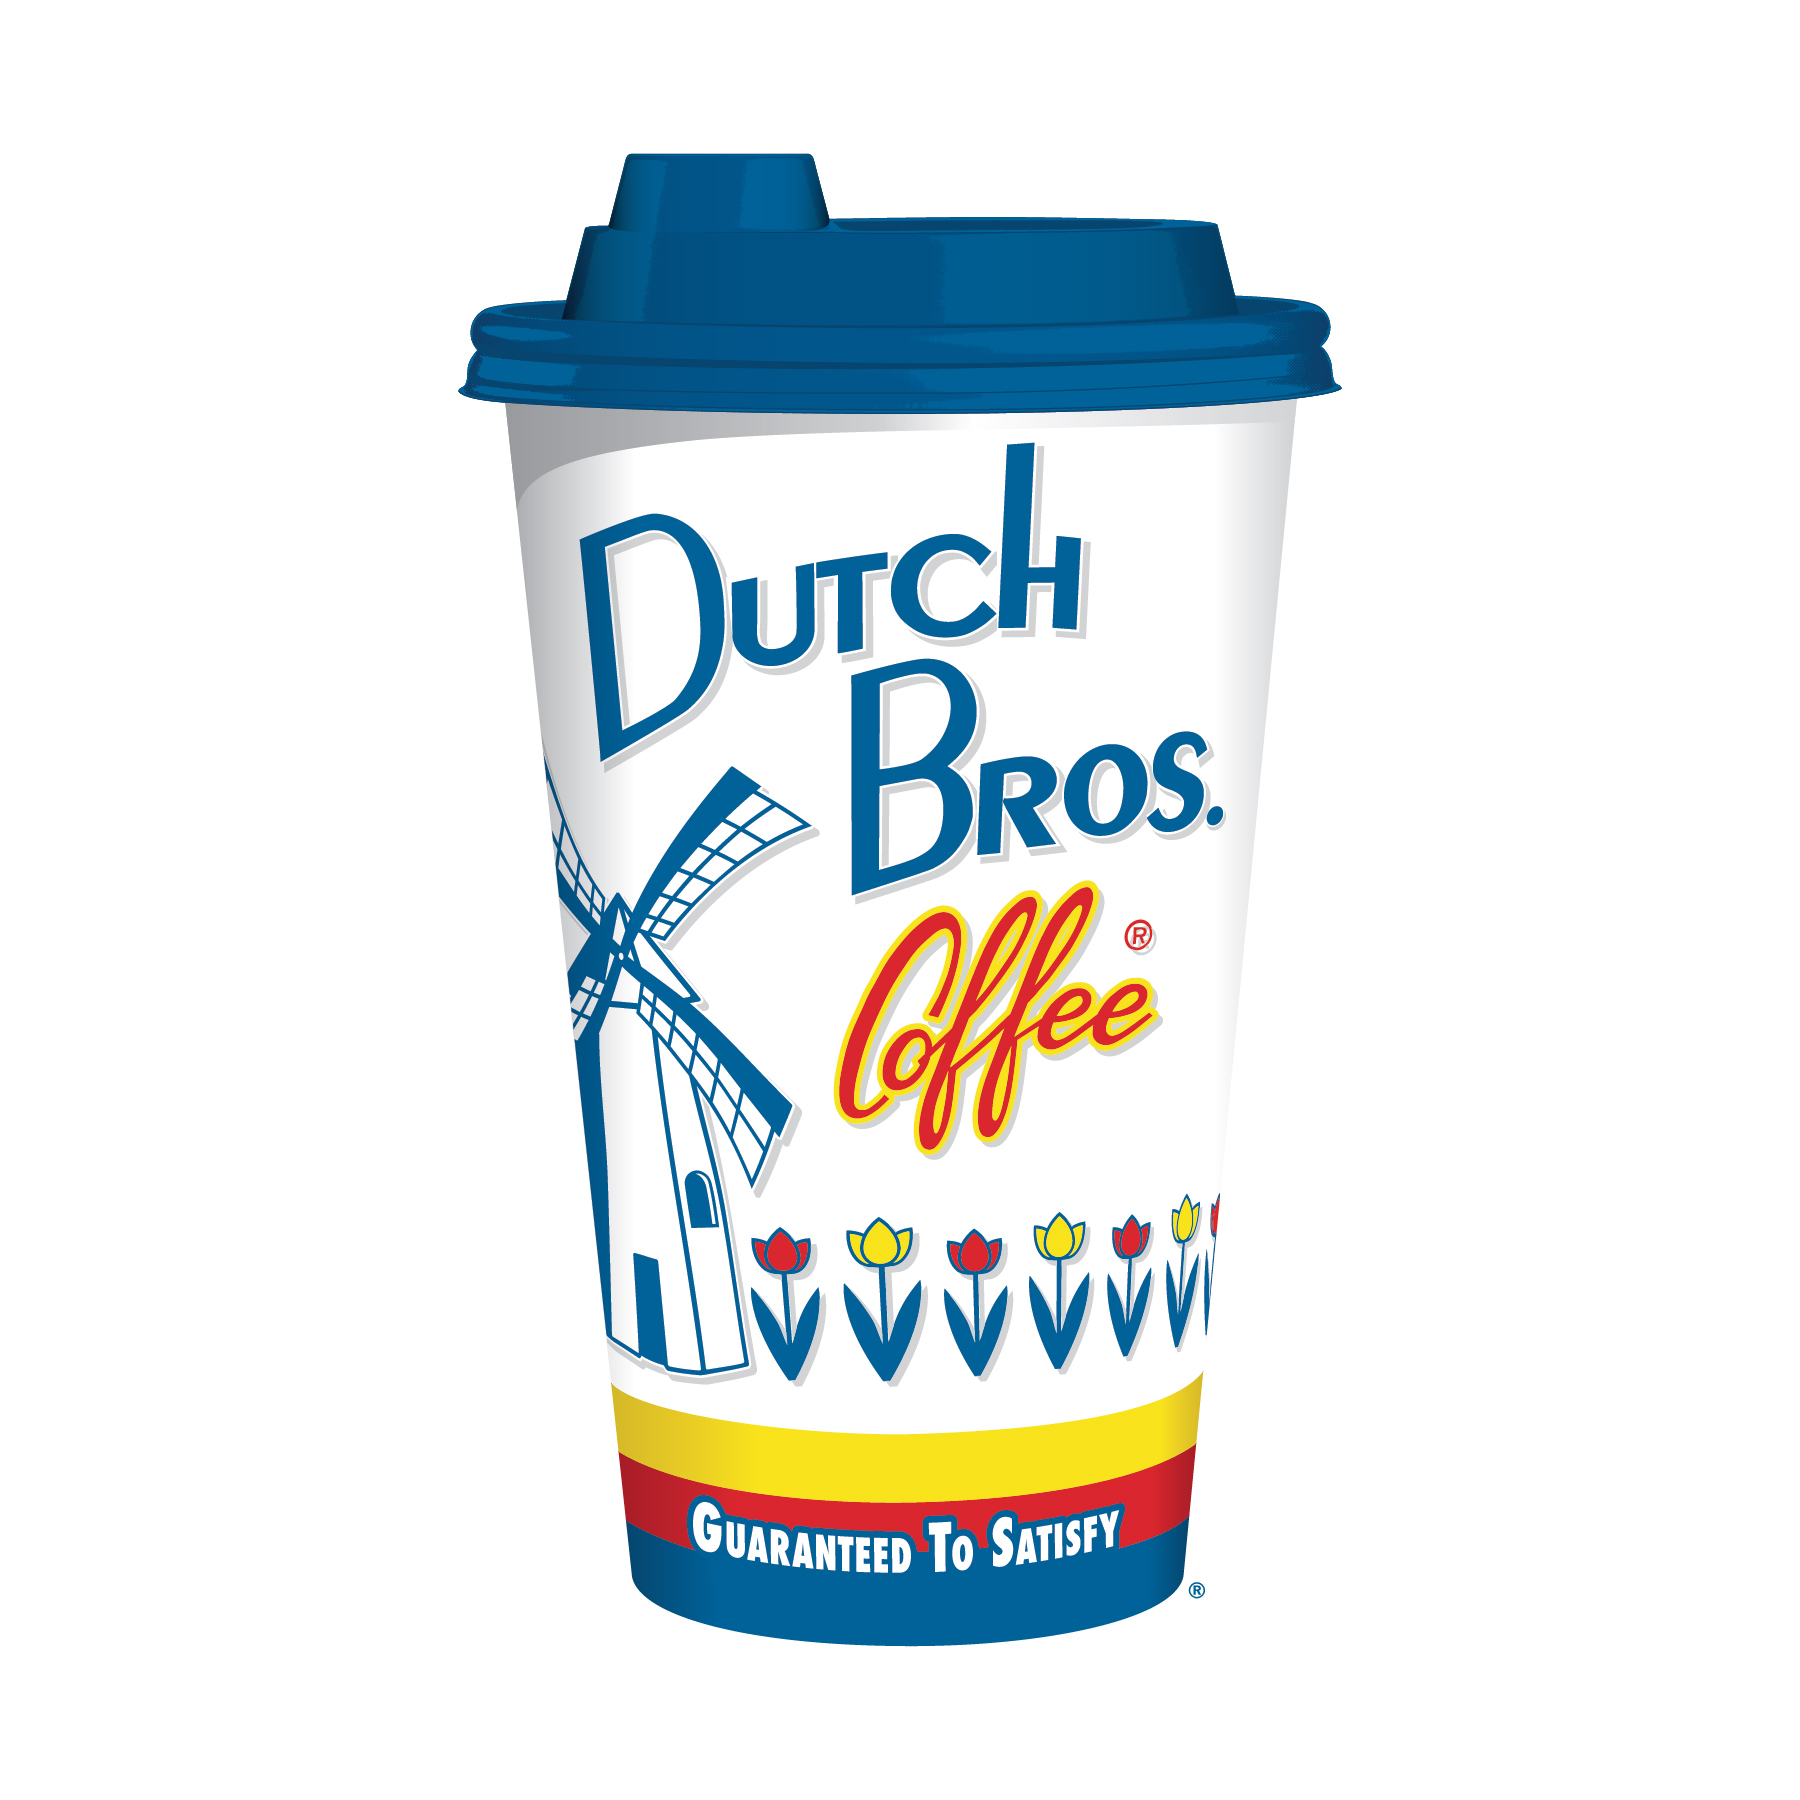 Dutch bros clipart.